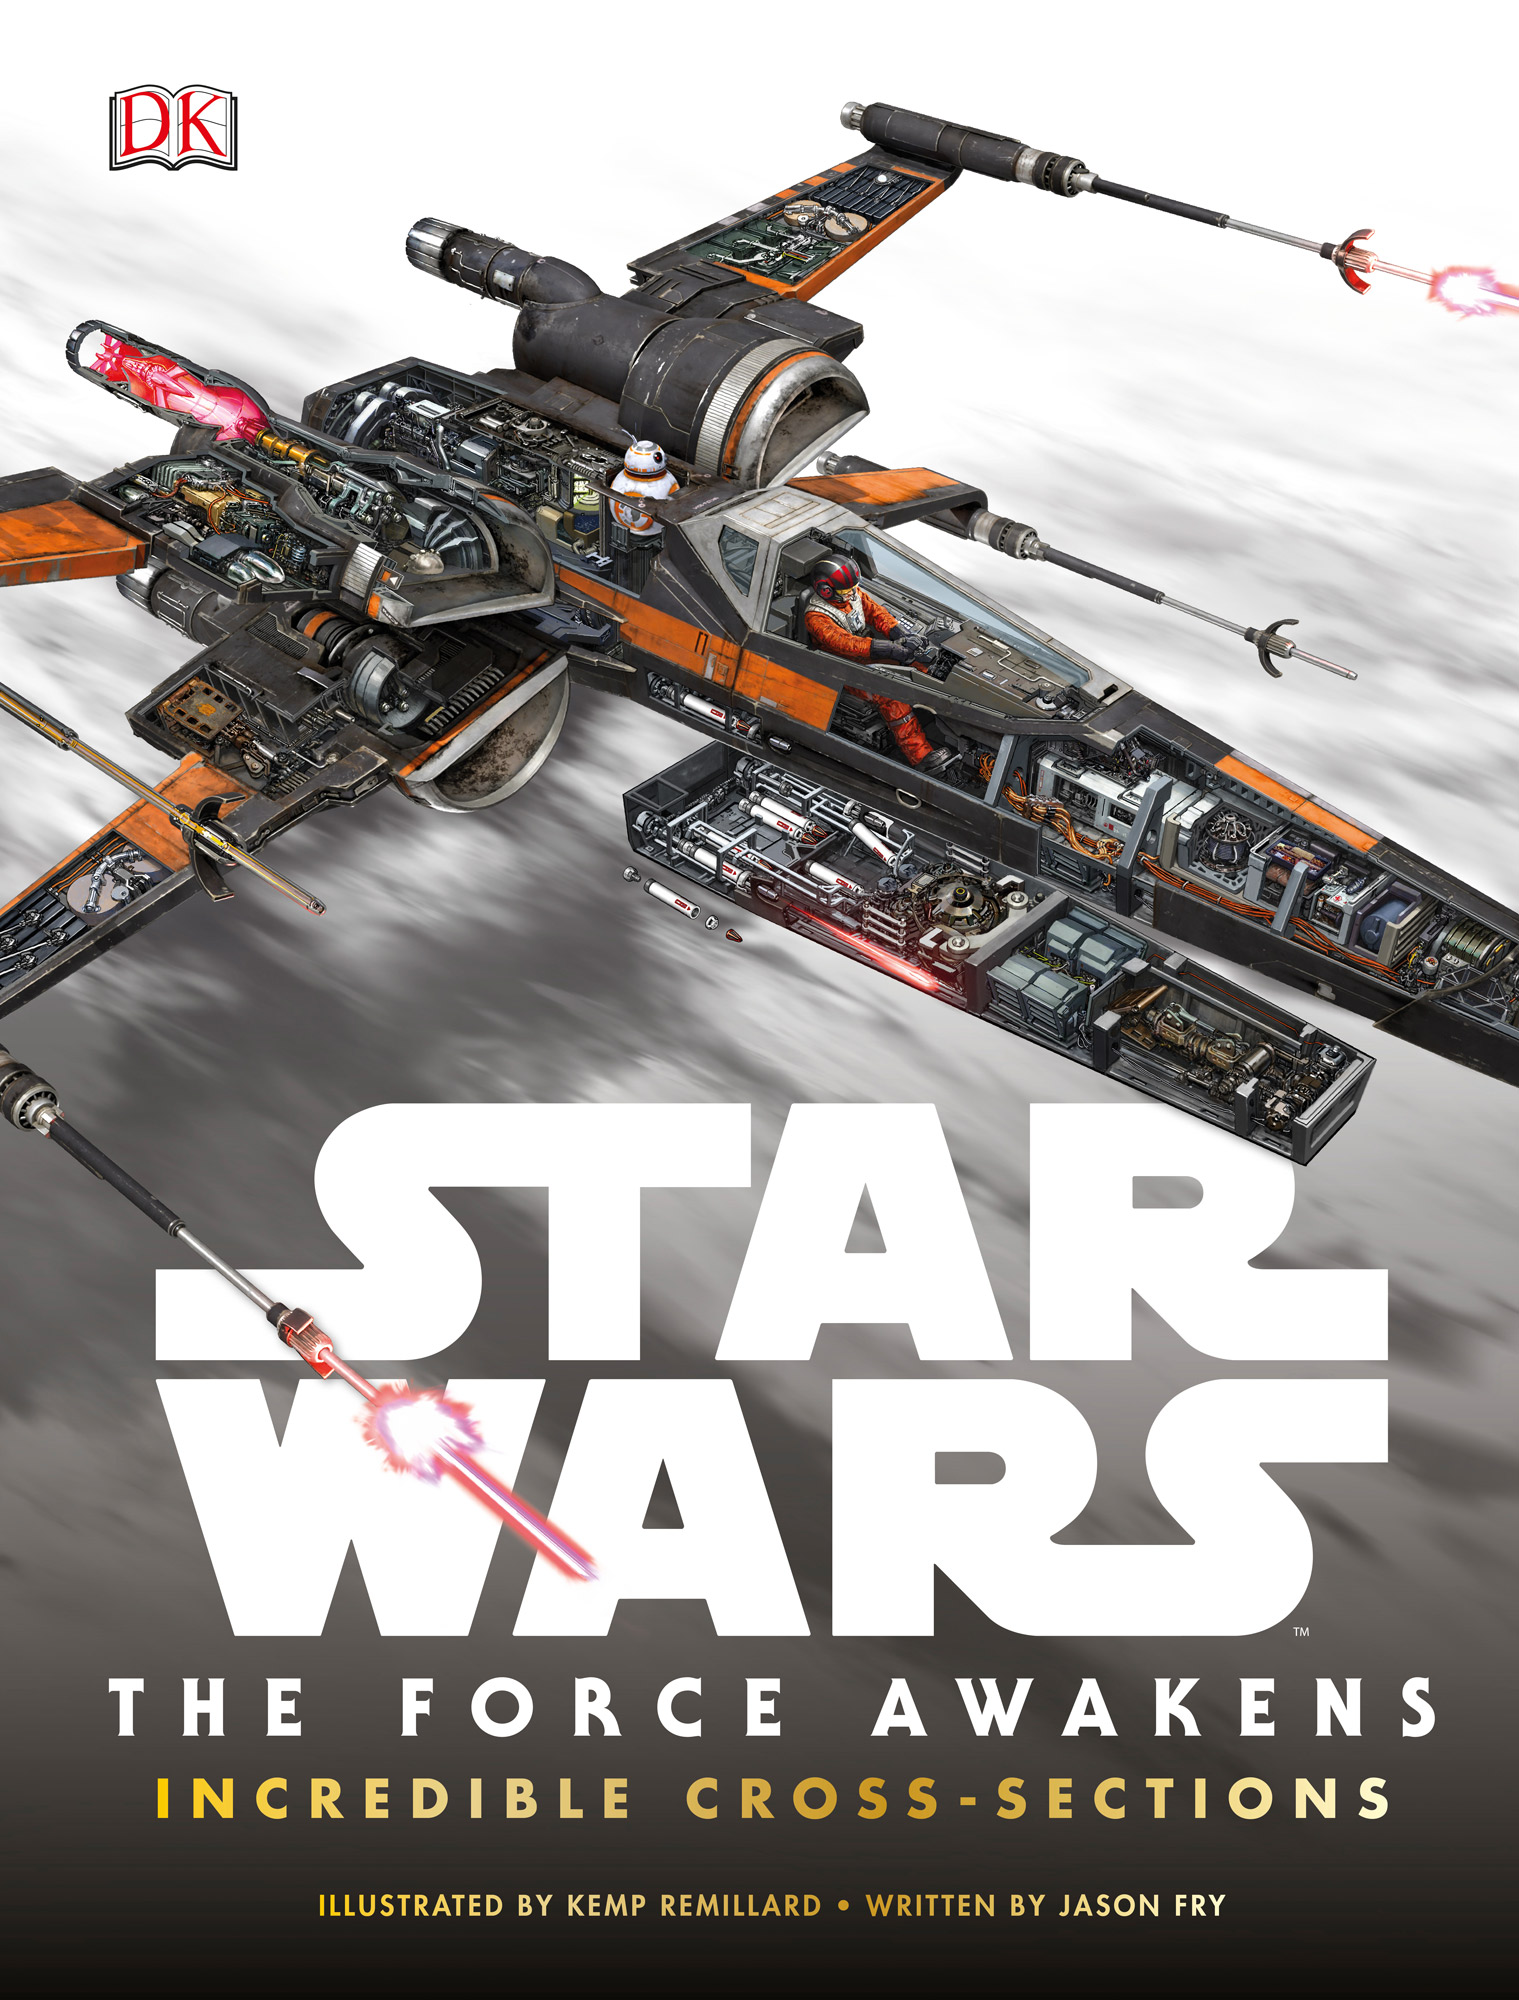 'The Force Awakens: Incredible Cross-sections' by Jason Fry (reviewed by Skuldren)